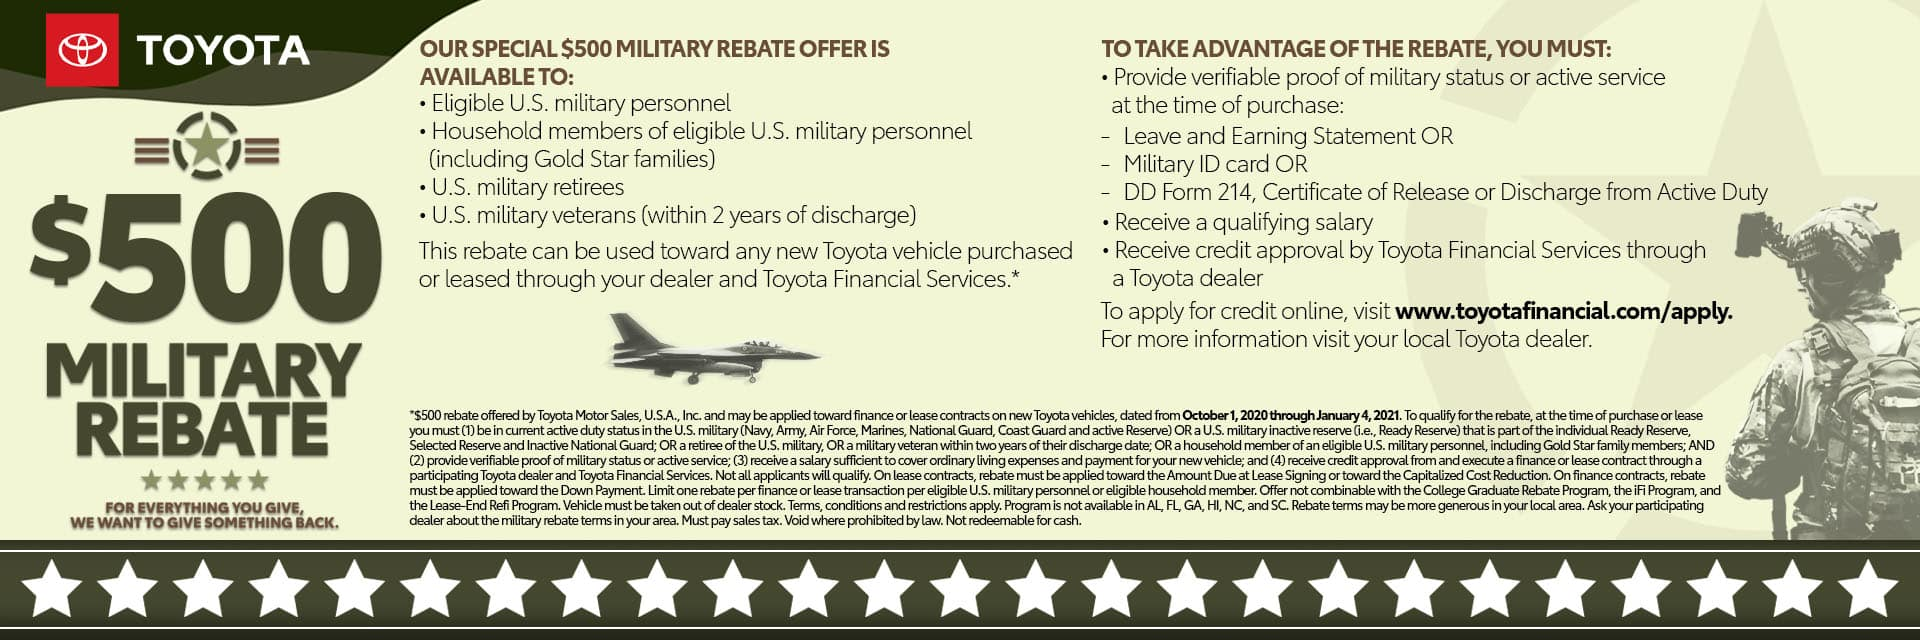 $500 Military Rebate Offer&Incentive1920x640 Slider-Wilkesboro